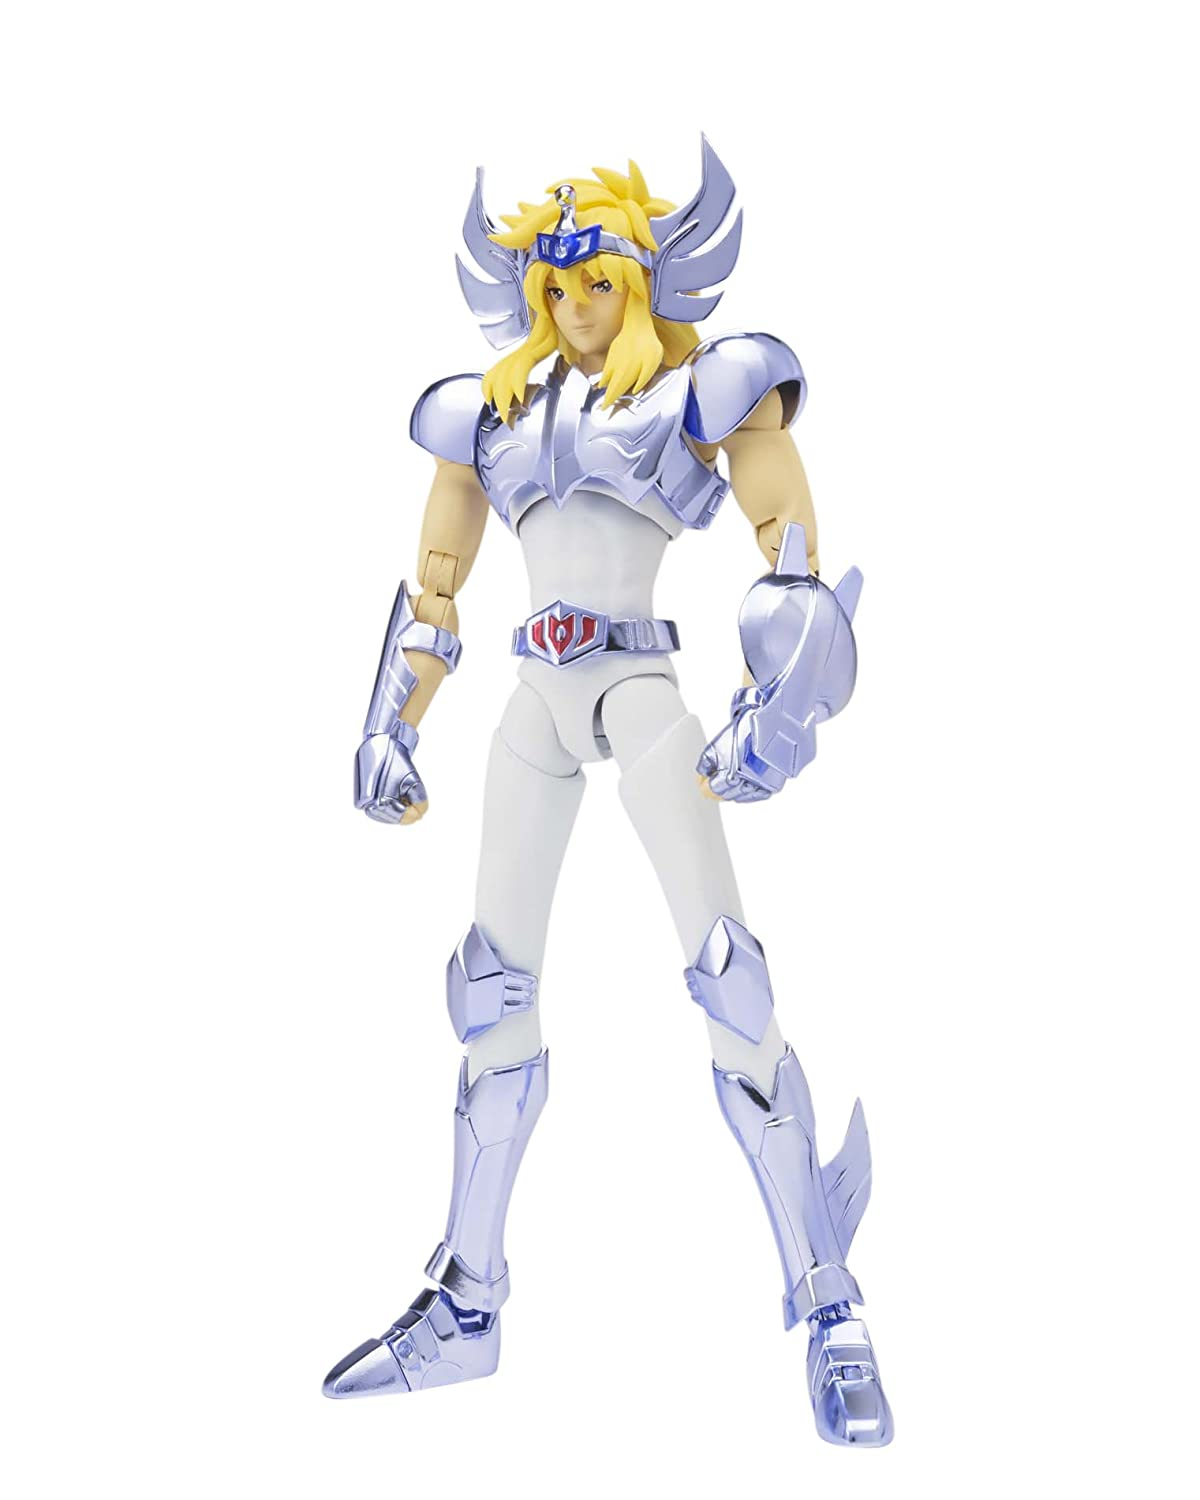 Bandai Tamashii Nations Saint Cloth Myth ExCygnus Hyoga Action Figure